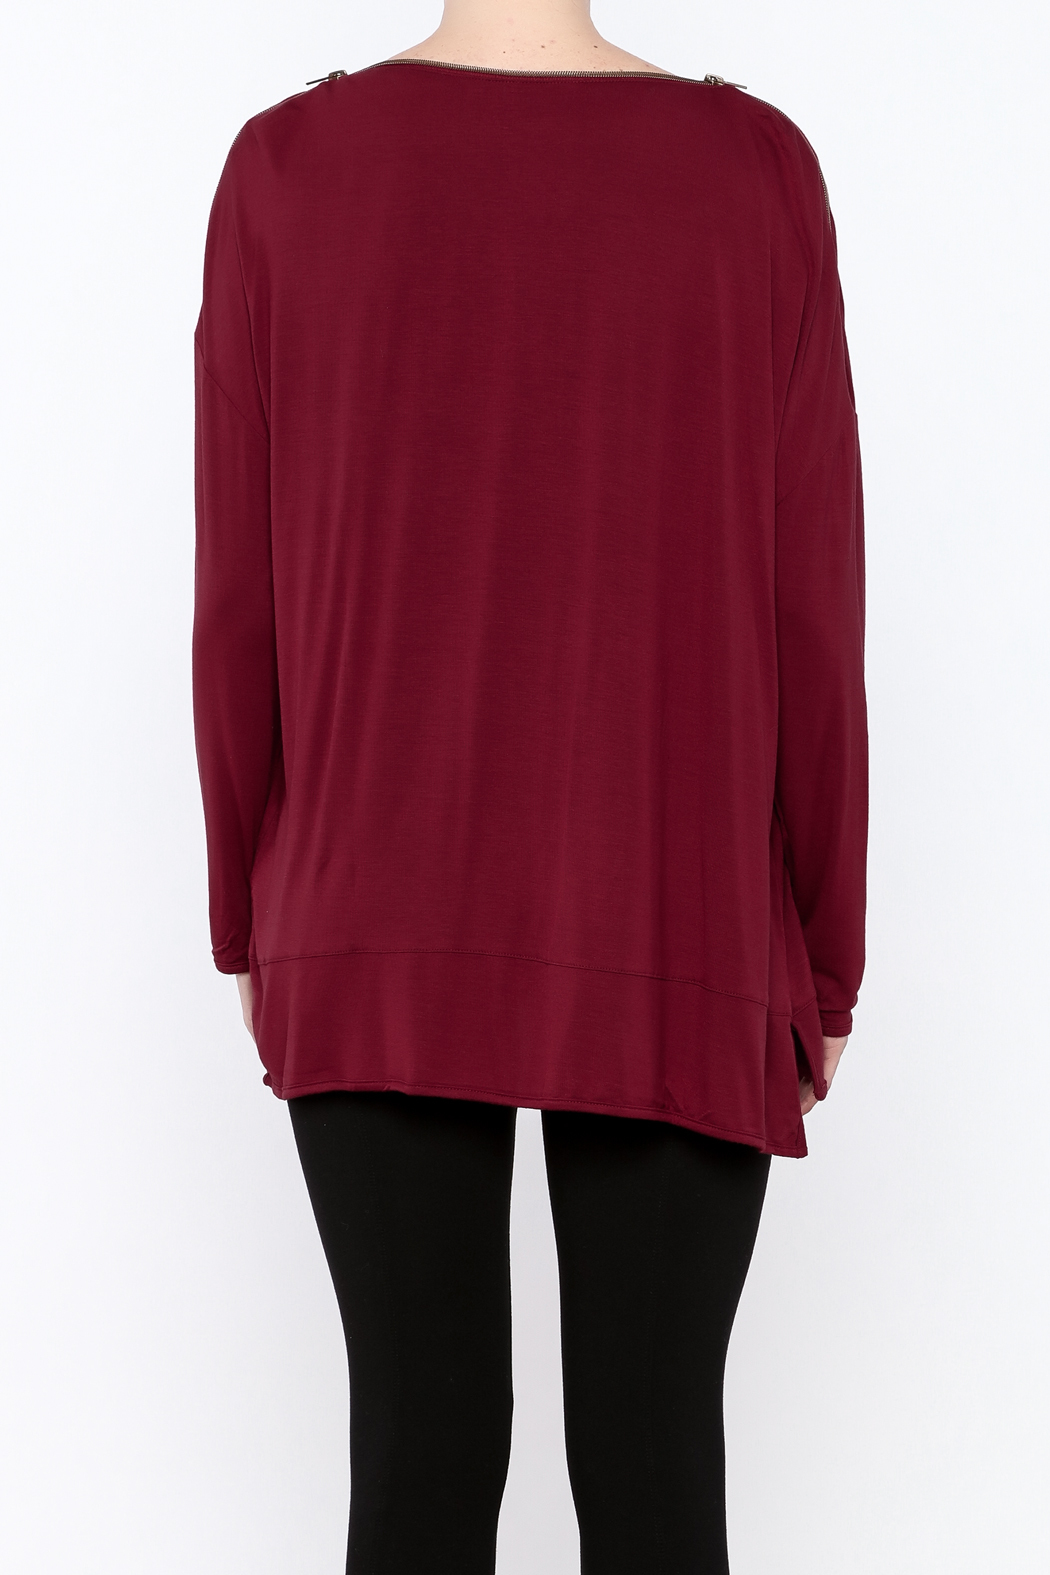 Simply Noelle Zipper Neck Top - Back Cropped Image